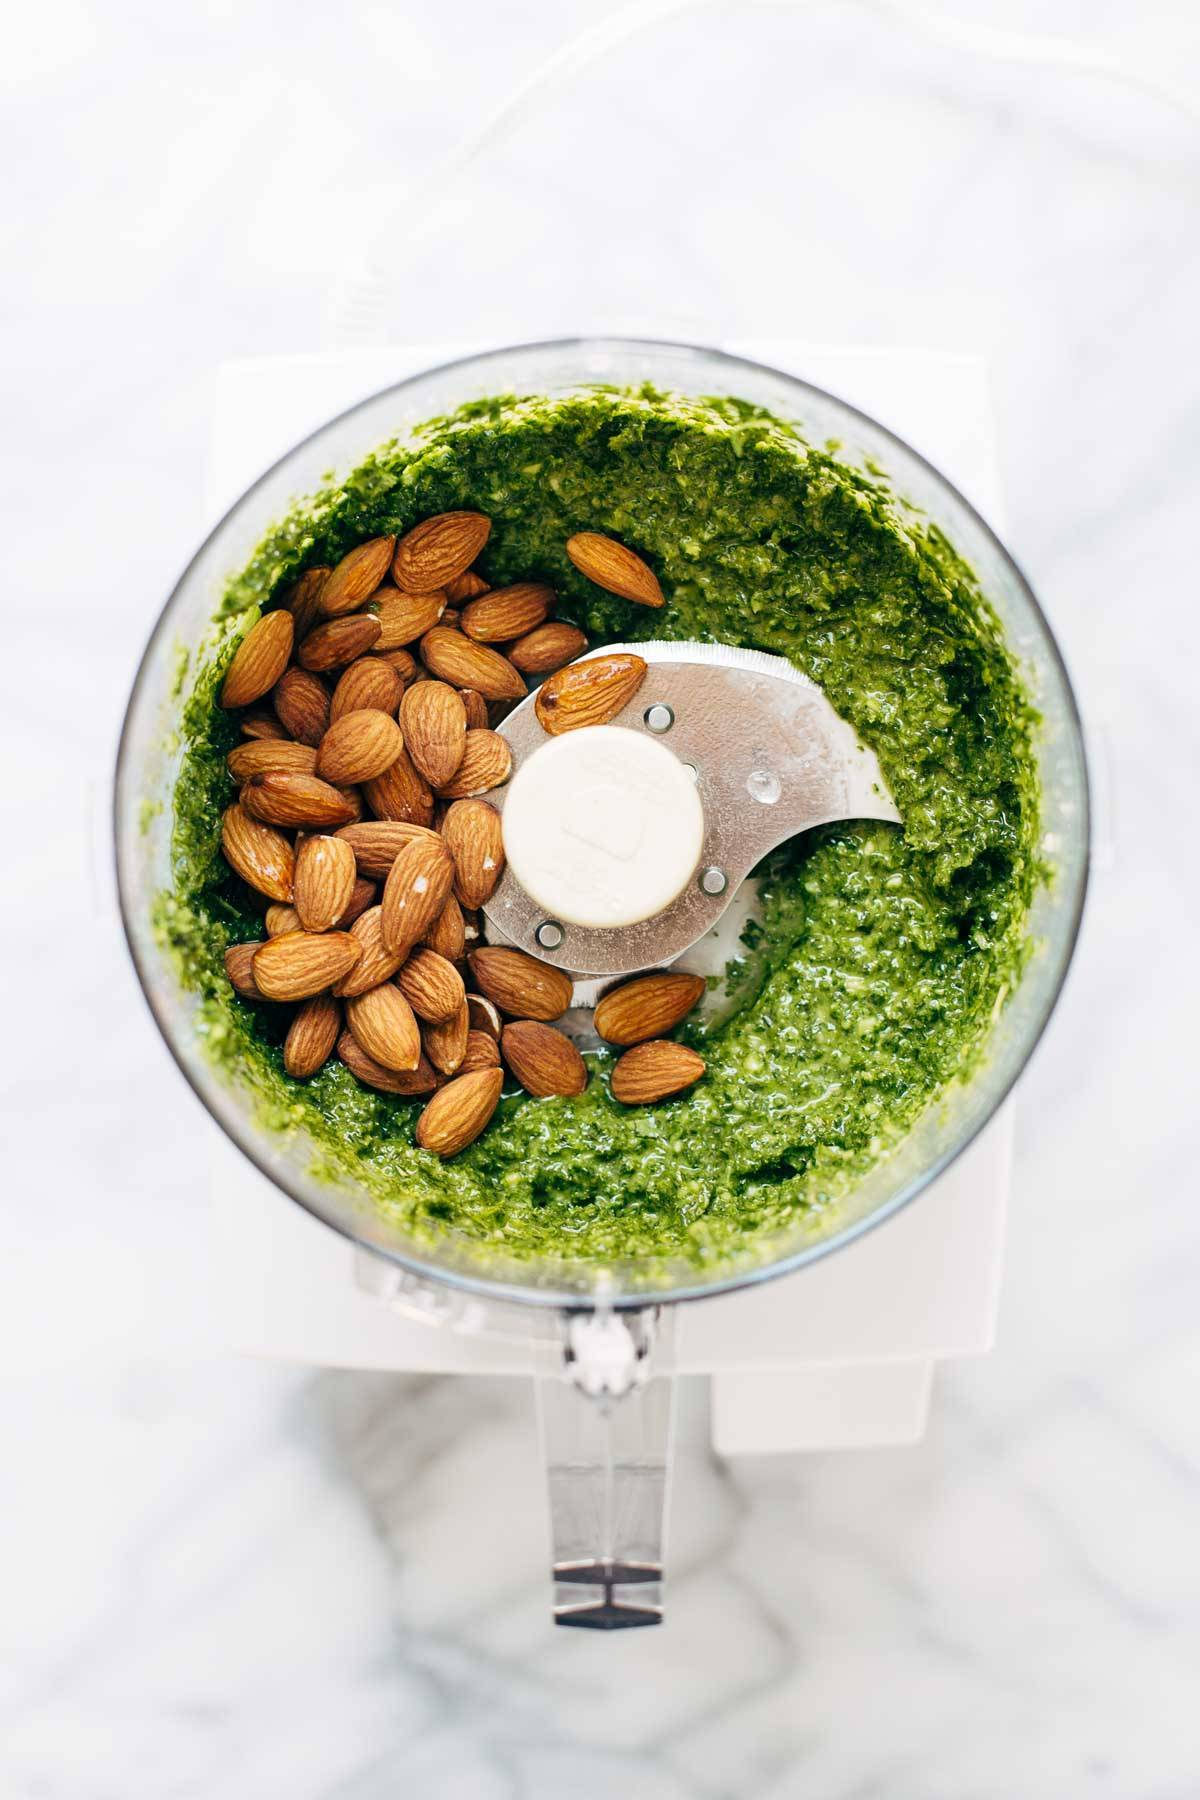 Kale pesto and almonds in a food processor.